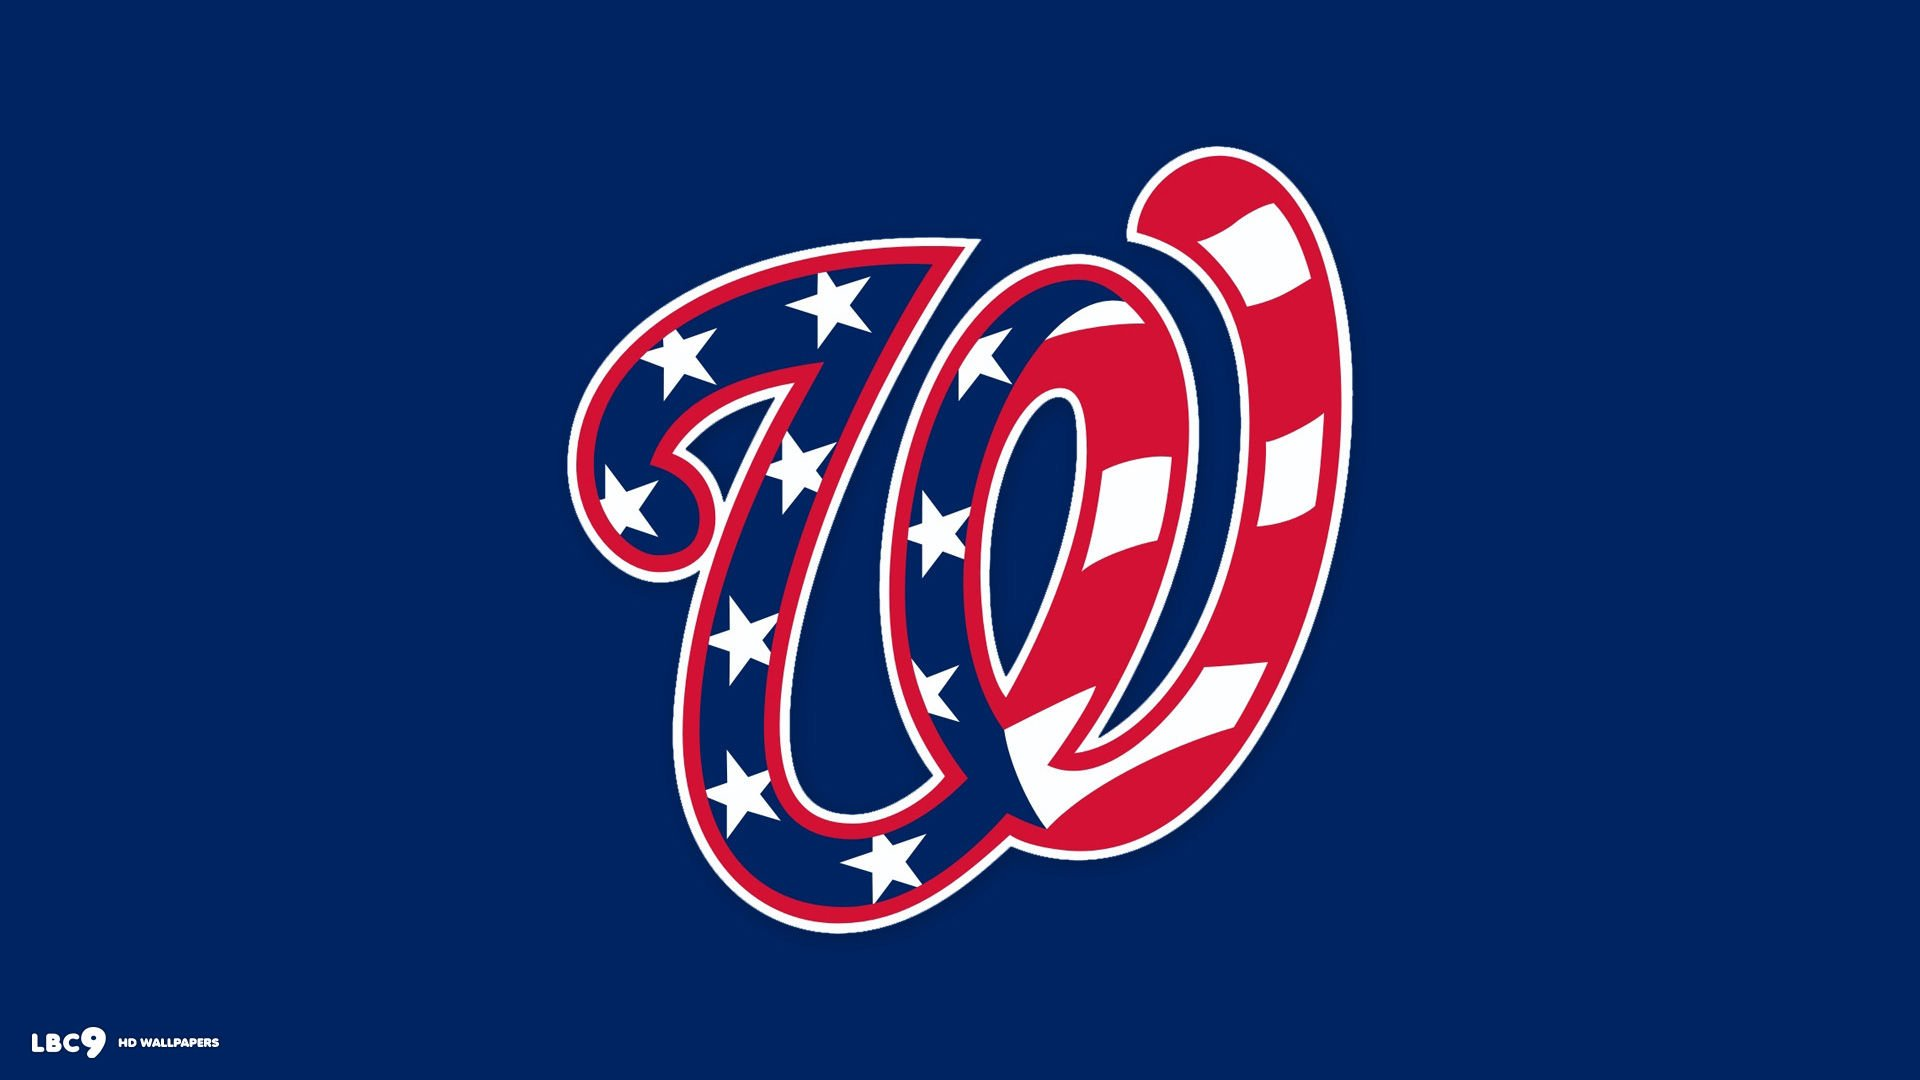 Awesome-Washington-Nationals-Full-HD-Pictures-%C3%97-Nationals-Adorable-W-wallpaper-wp3602872